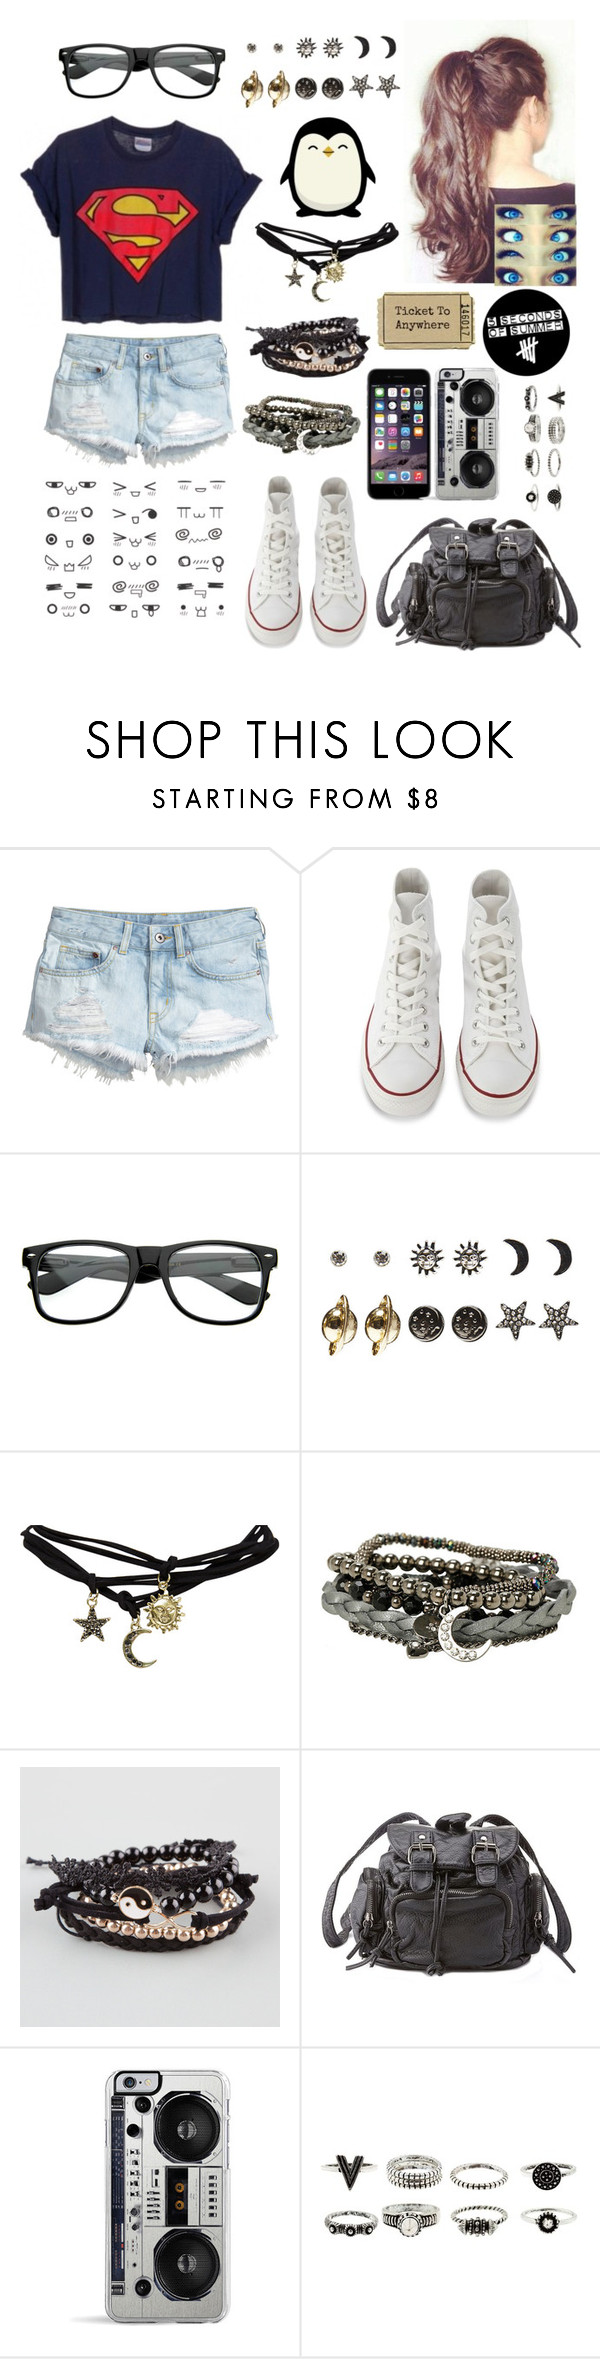 """""""This is me"""" by littlenerd10 ❤ liked on Polyvore featuring H&M, Converse, Wet Seal, Full Tilt, Hansen, Charlotte Russe, Zero Gravity and nerdsoutfit"""